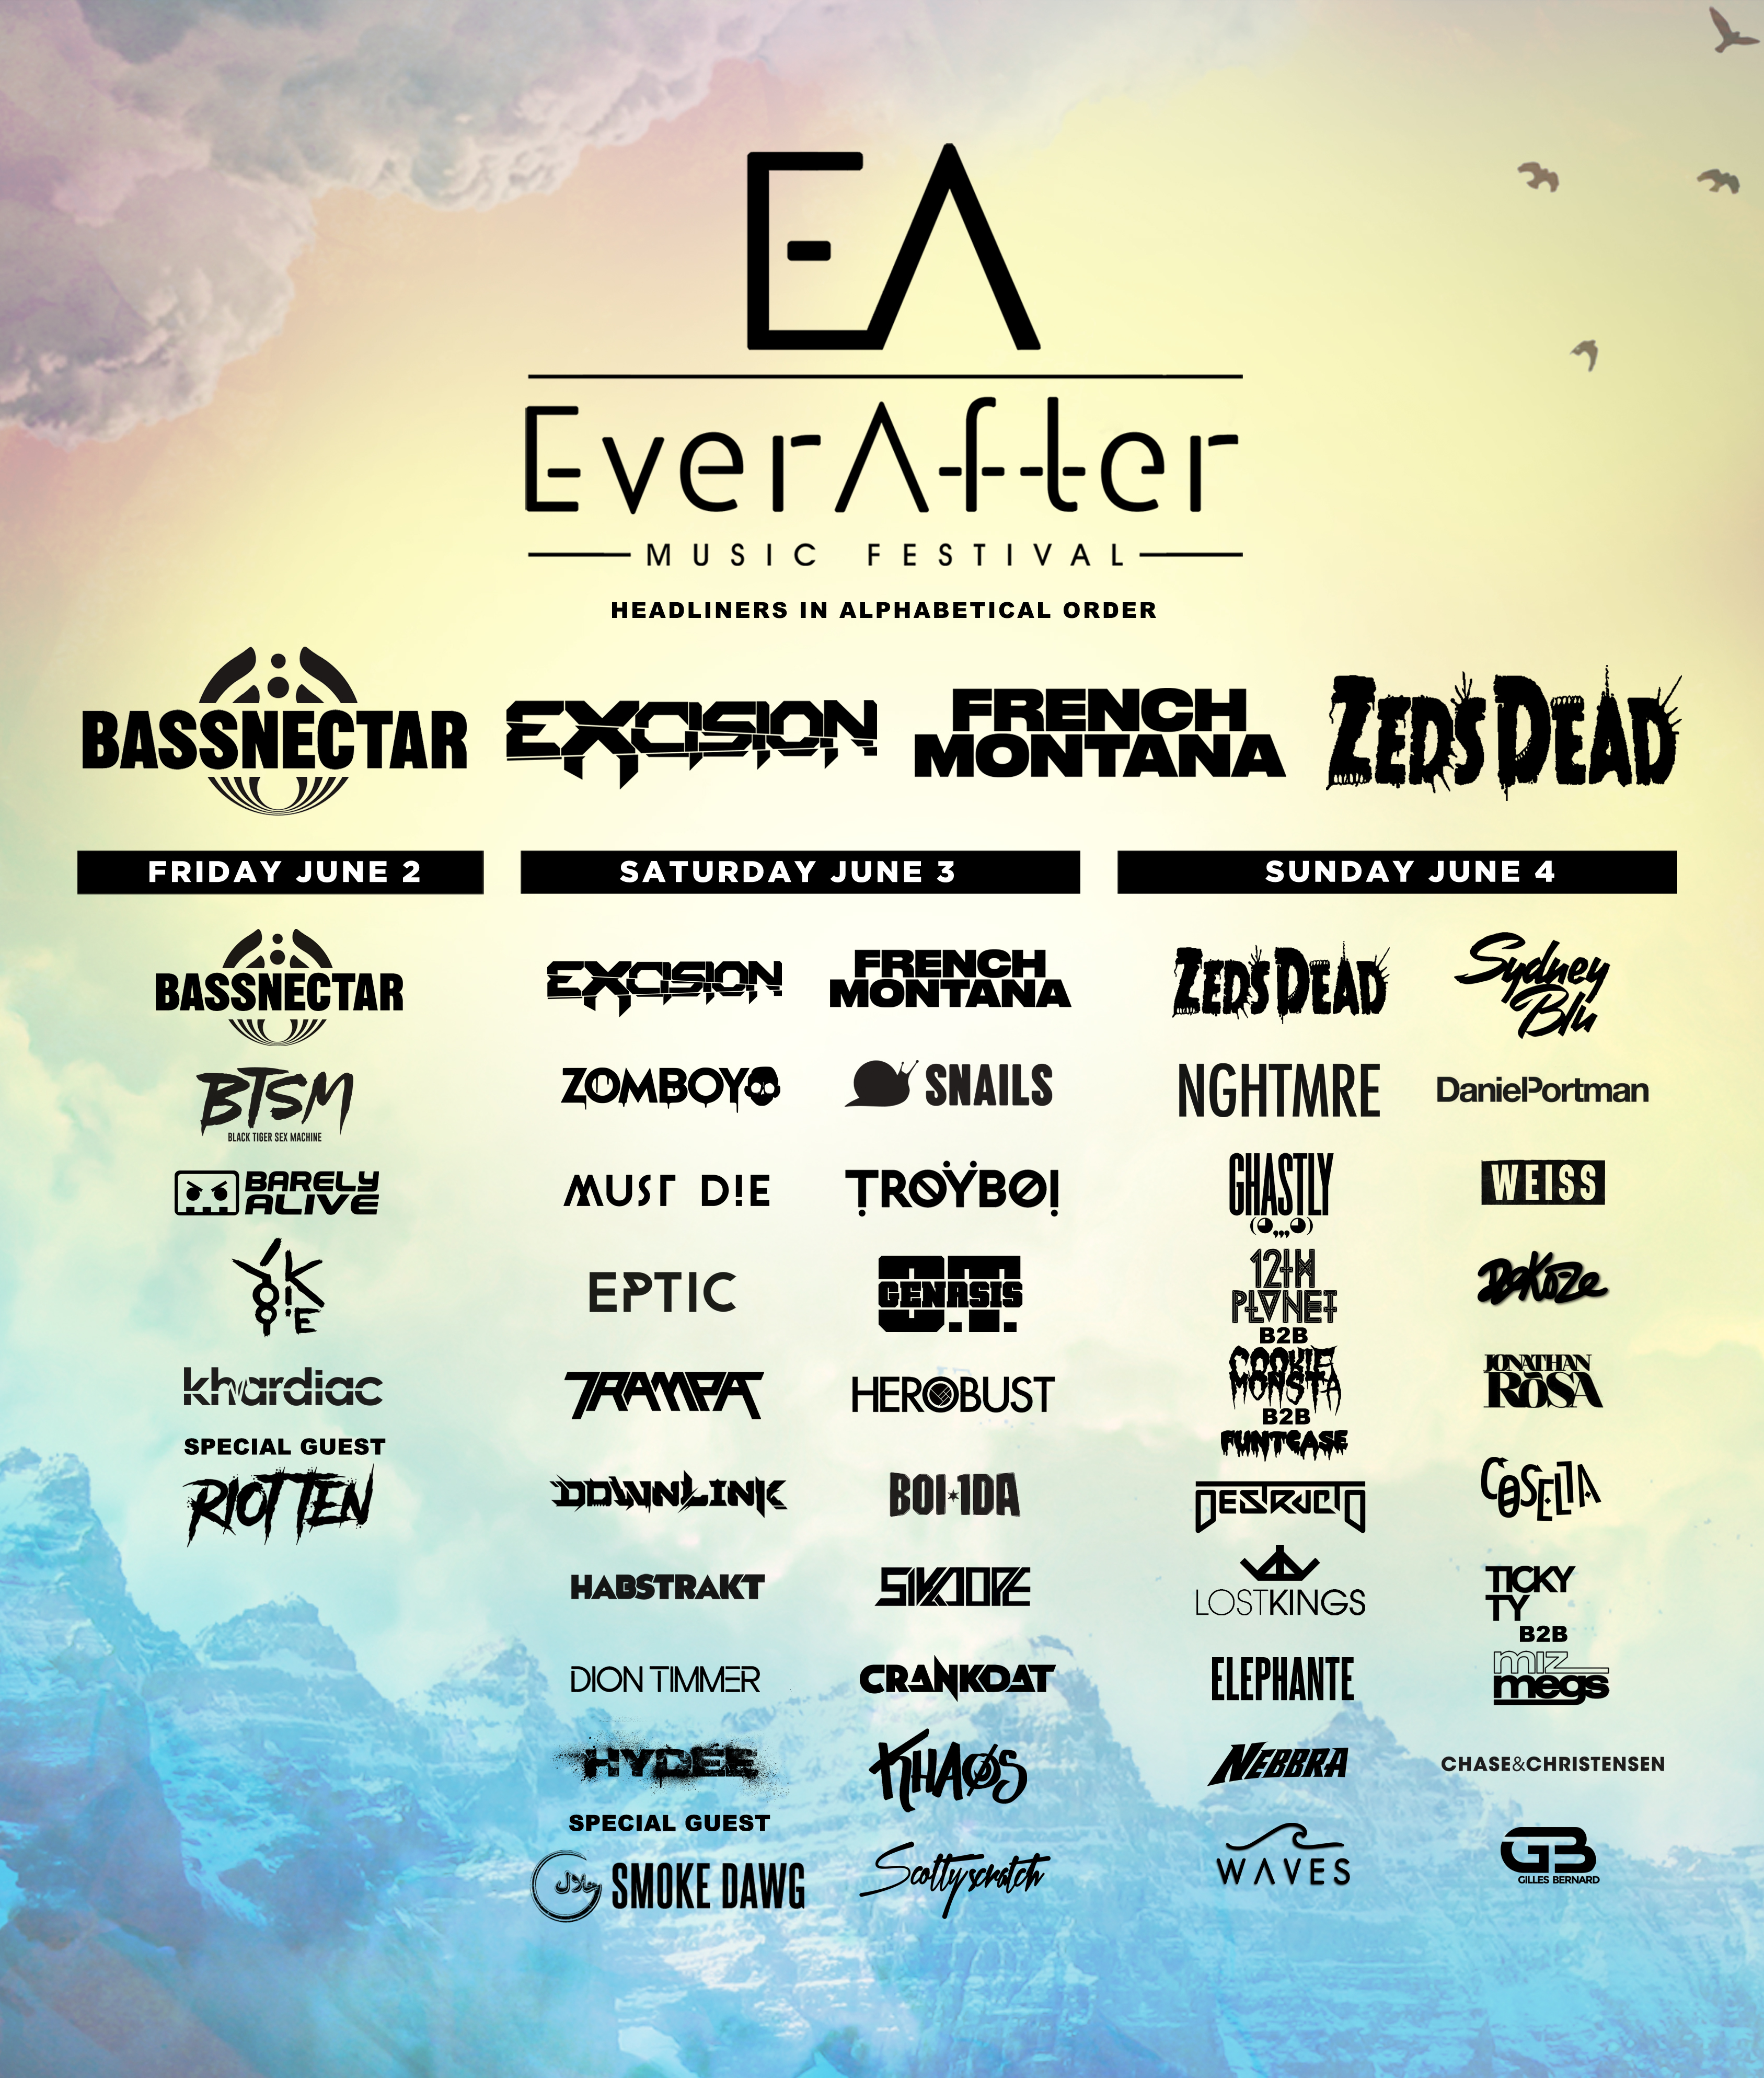 Bassnectar at Ever After 2017